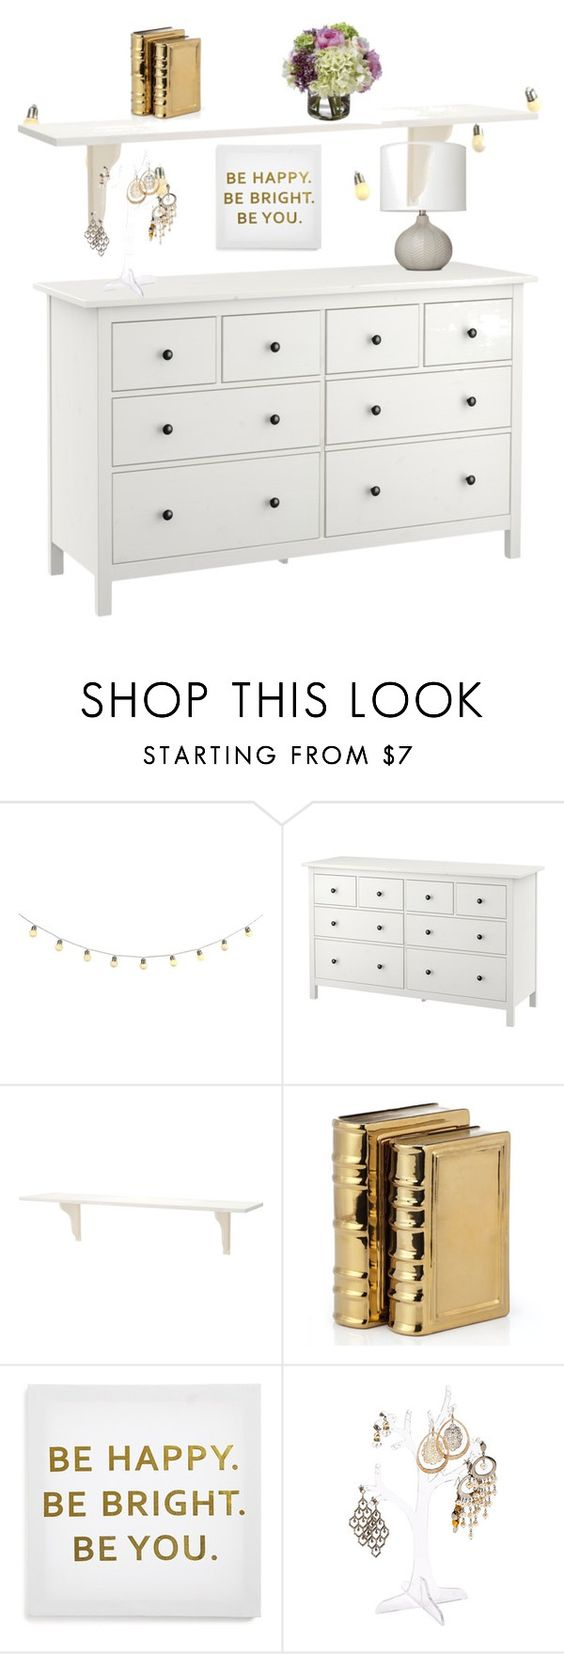 """Untitled #37"" by hcampbell-1 ❤ liked on Polyvore featuring interior, interiors, interior design, home, home decor, interior decorating, Ankit and Threshold"